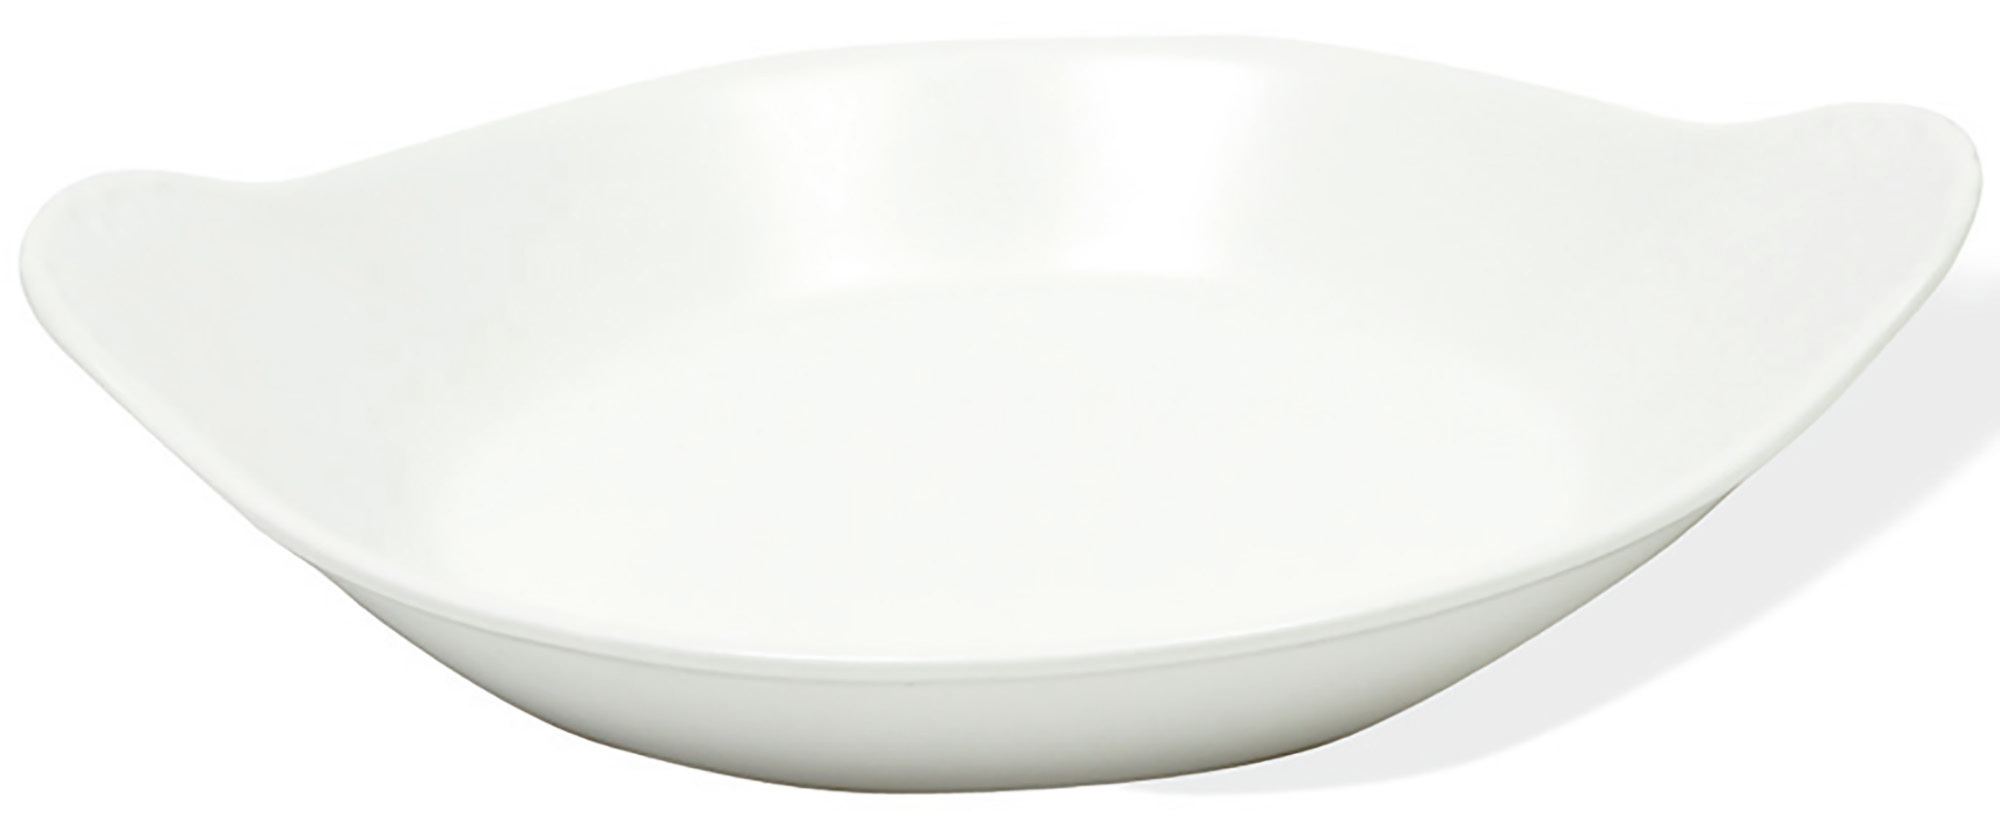 Maxwell & Williams White Basics 13.5Cm Round Au Gratin Dish